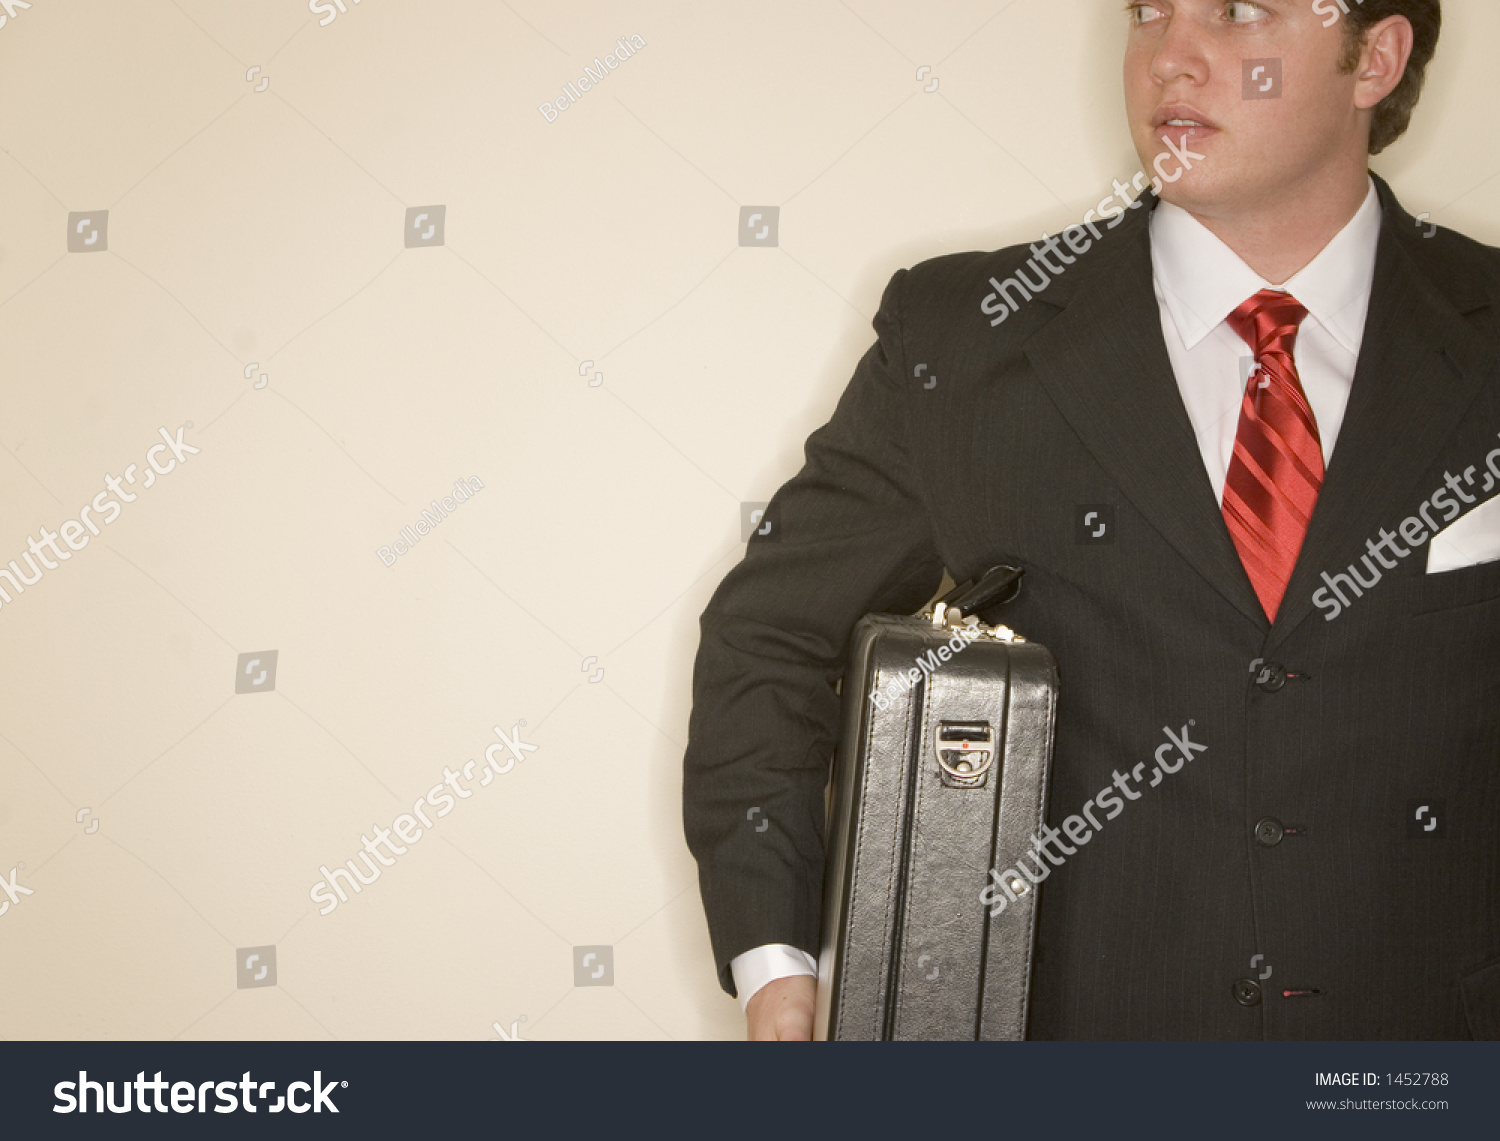 Business Man Black Suit White Shirt Stock Photo 1452788 - Shutterstock